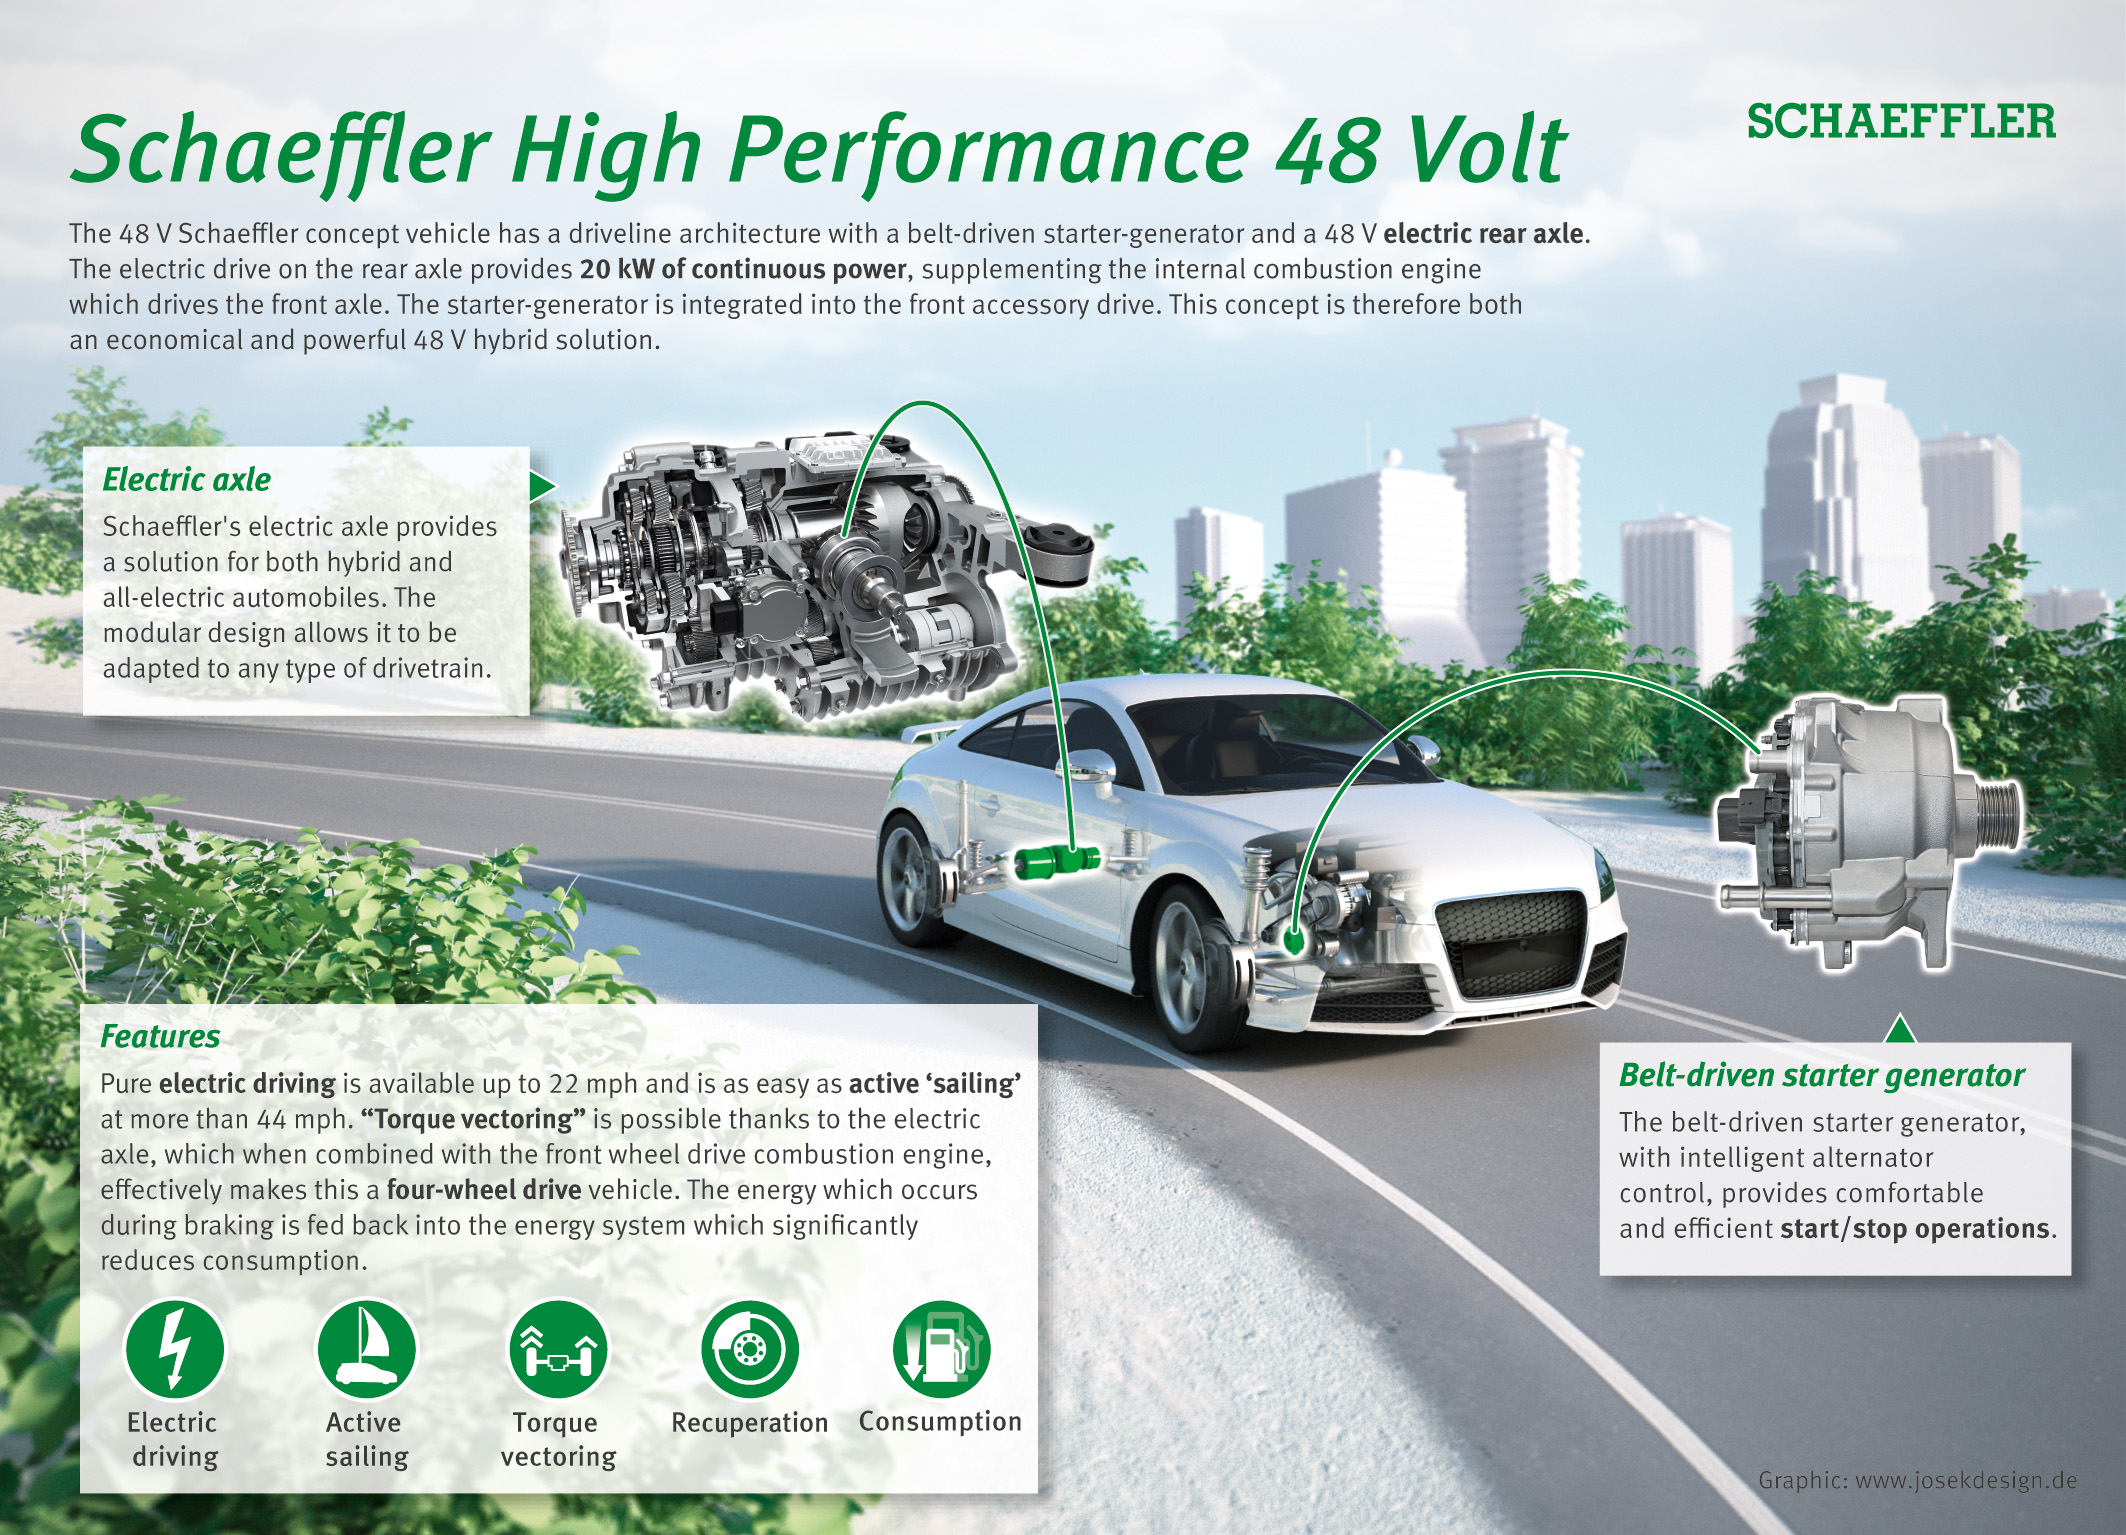 Schaeffler High Performance 48 Volt